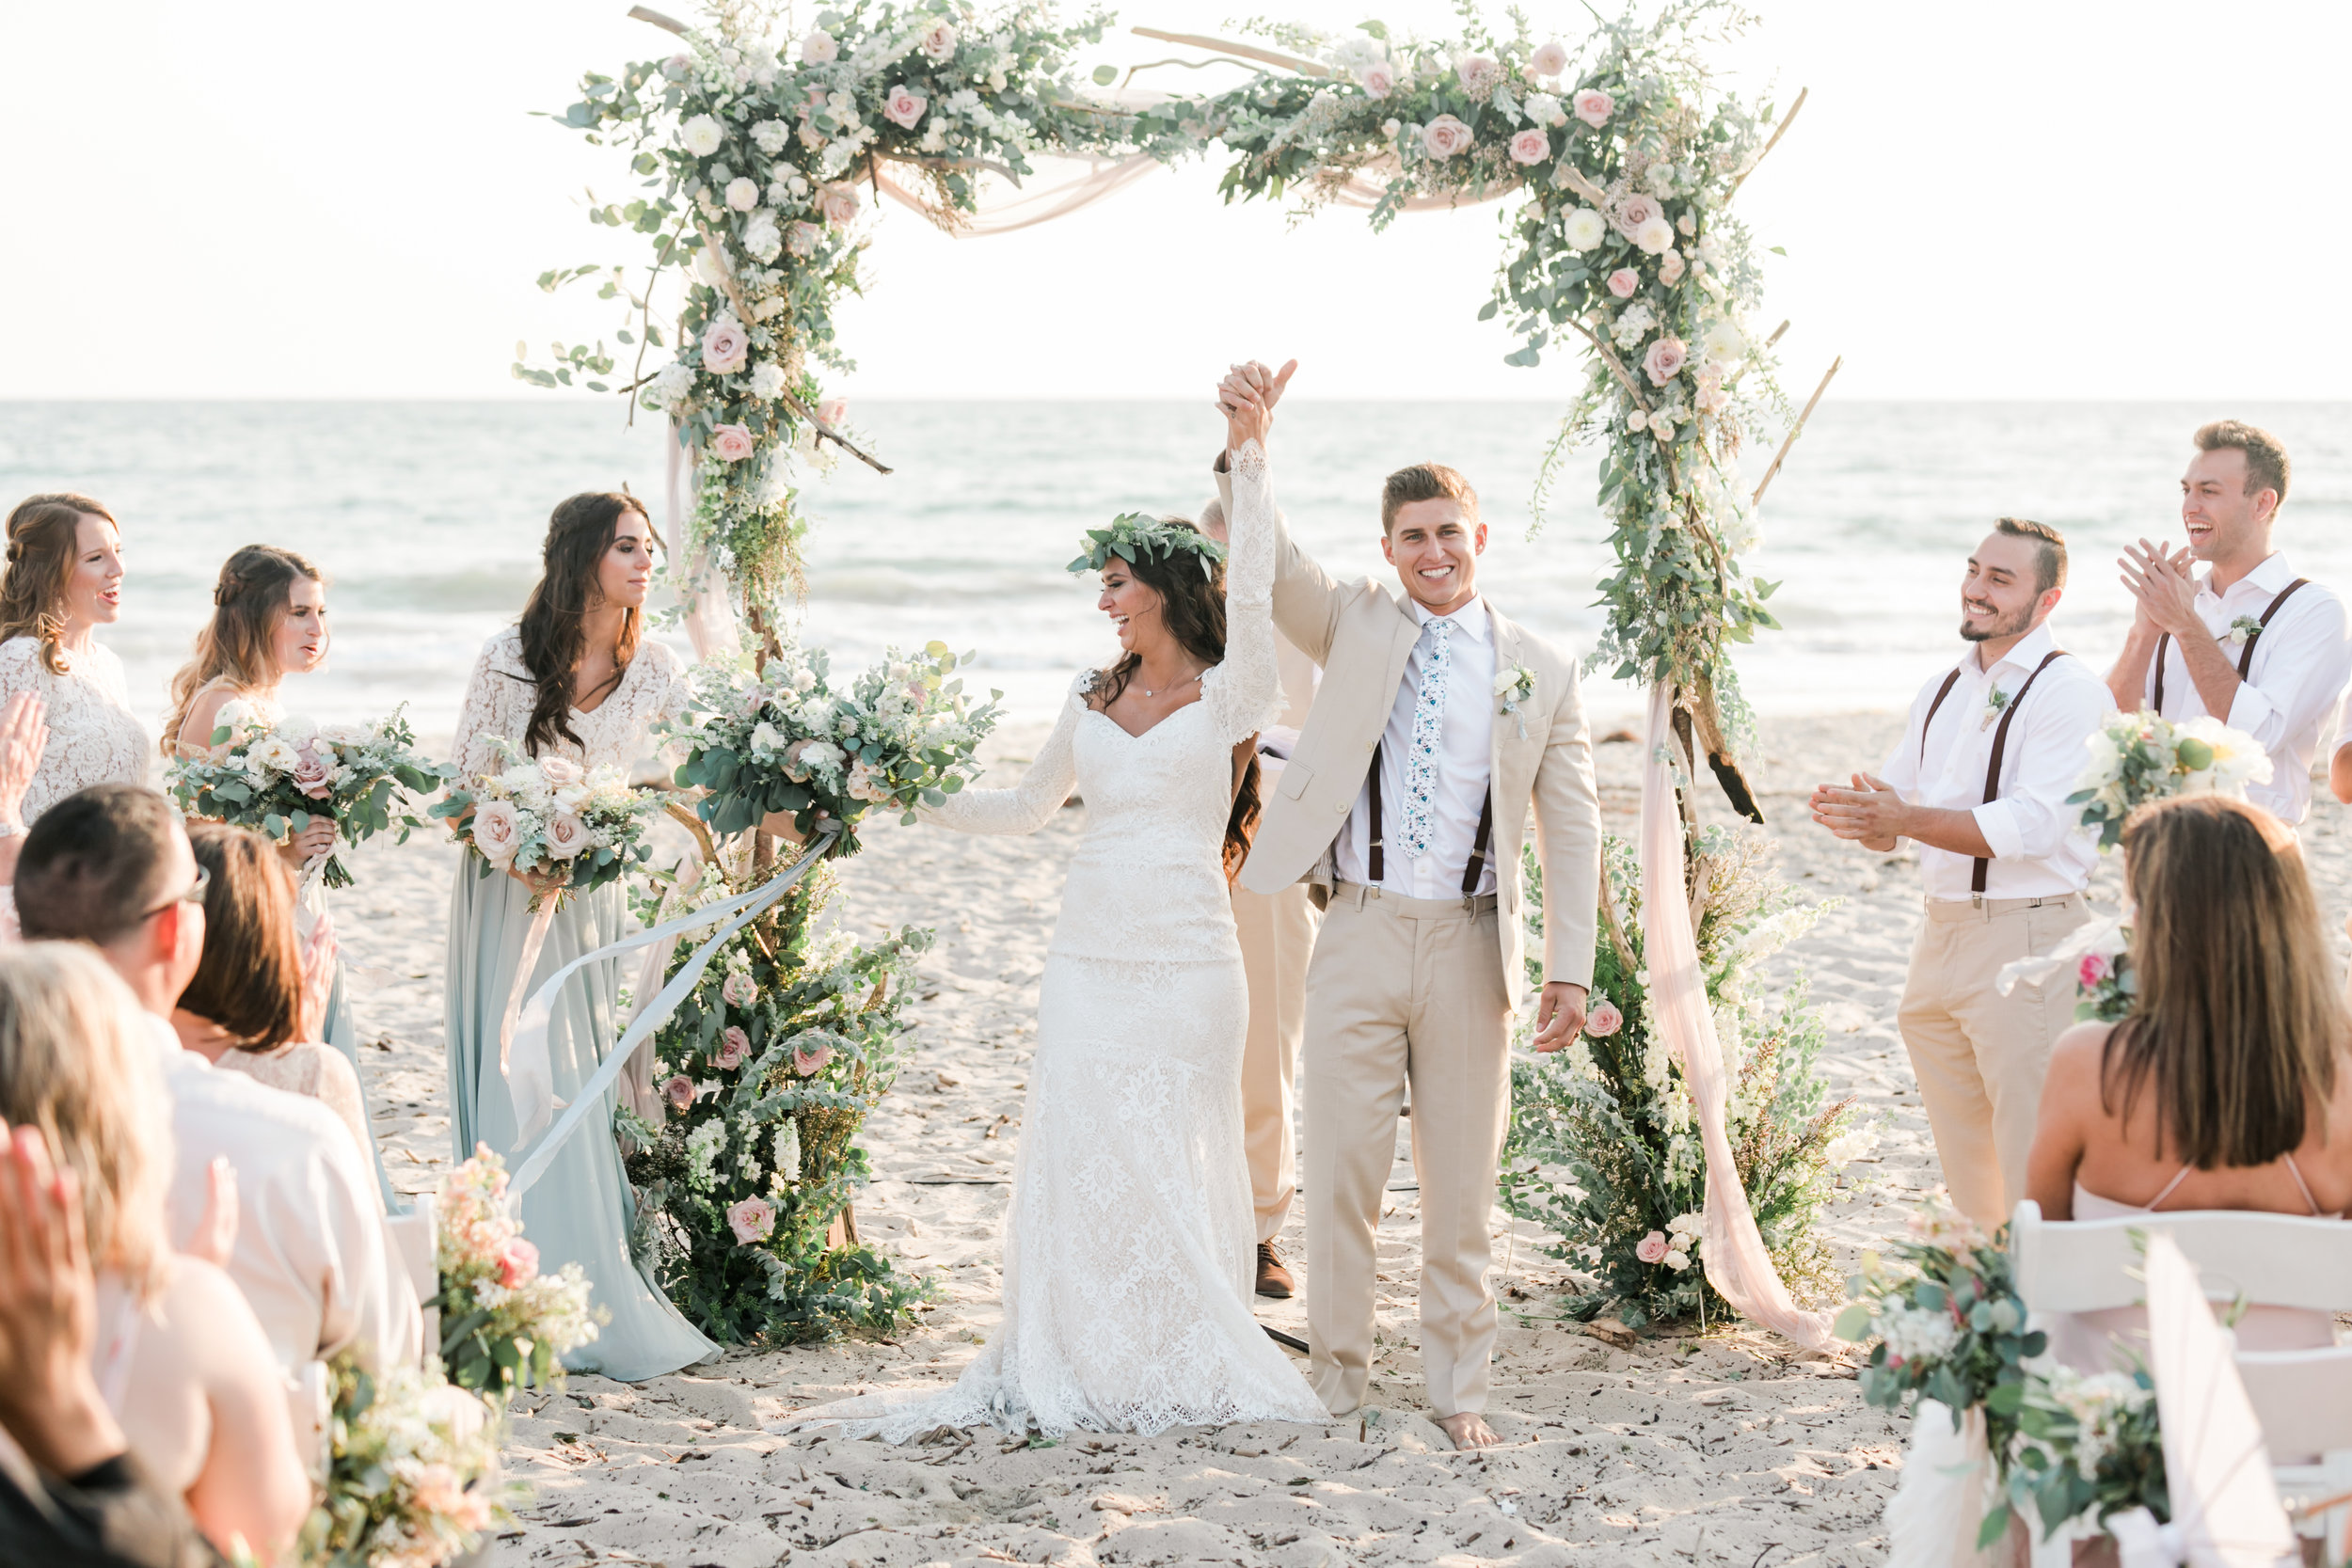 Destination Beach Wedding_Valorie Darling Photography-2310.jpg